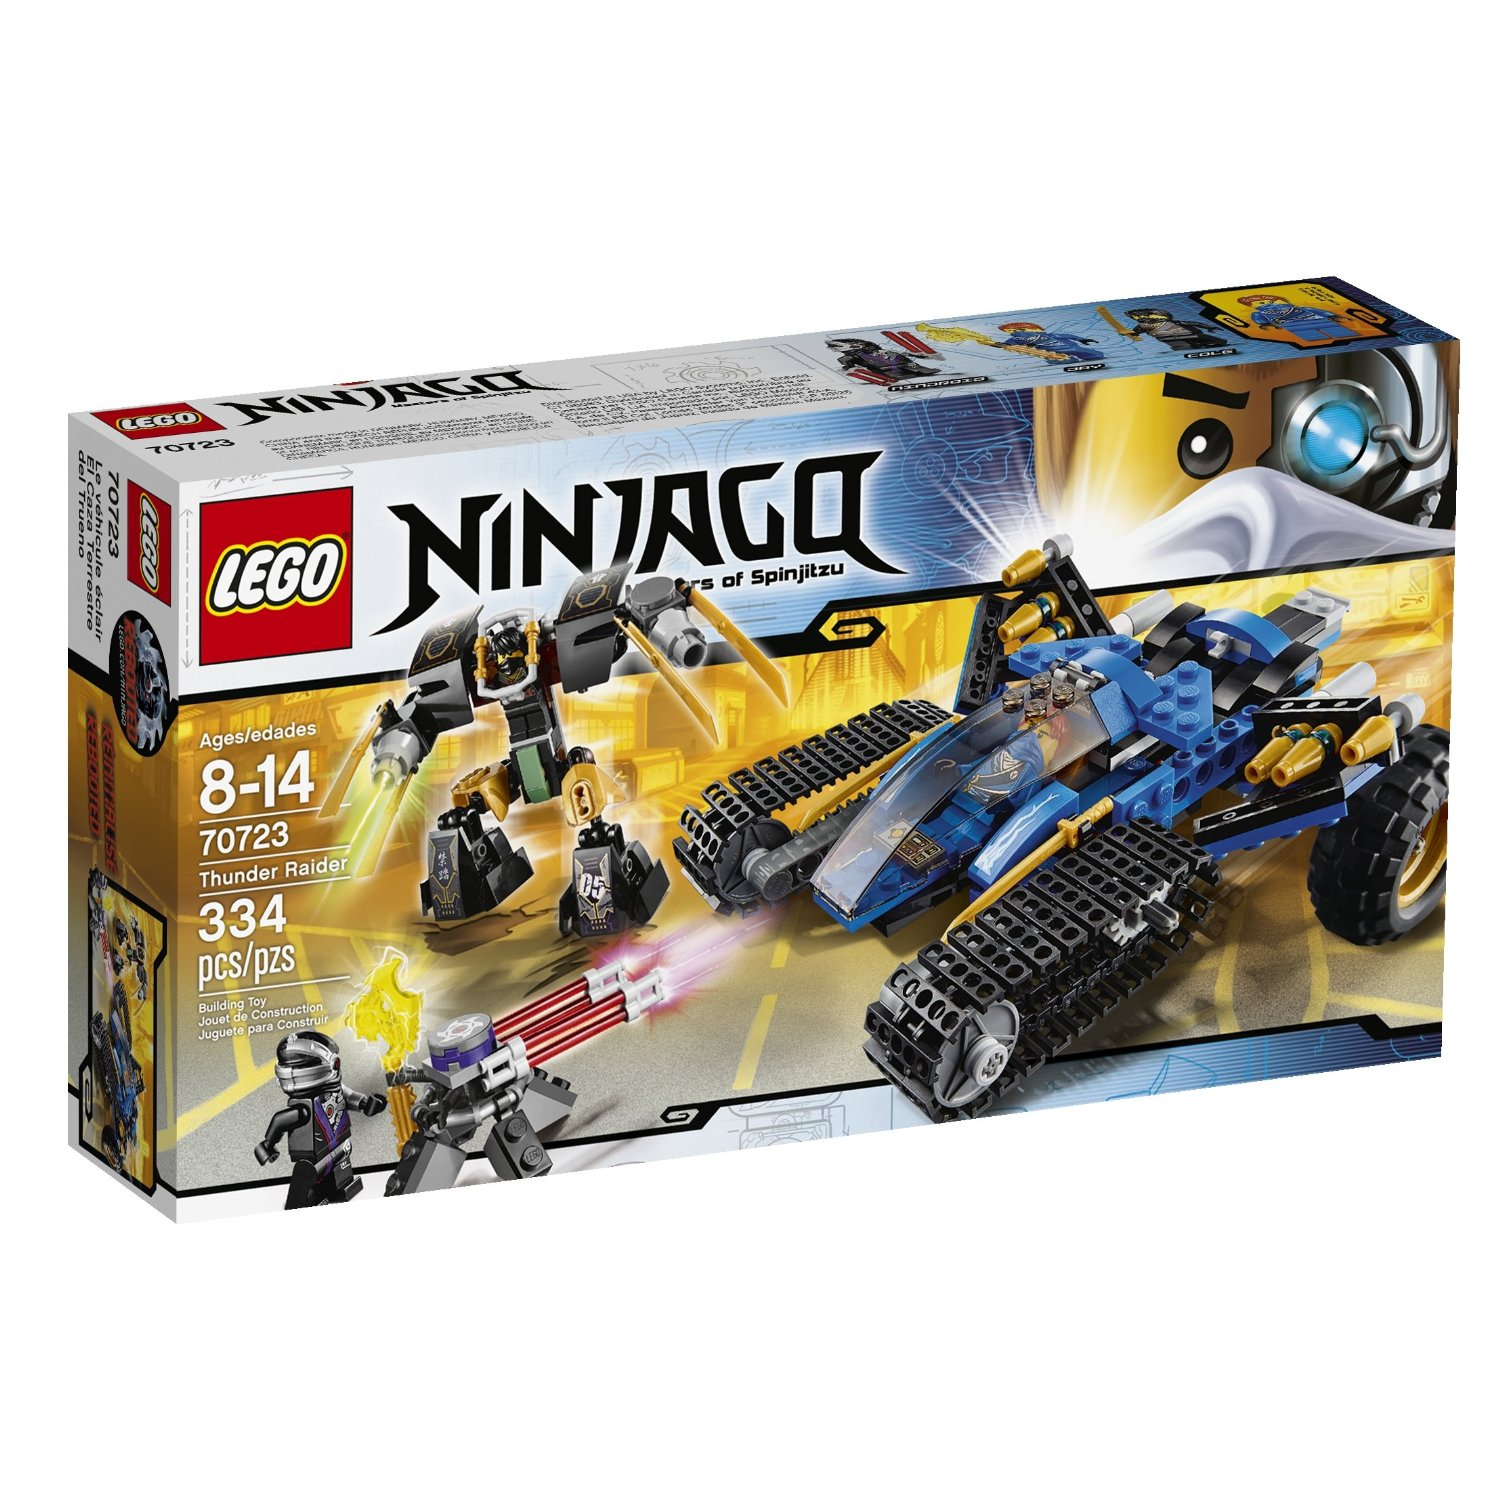 Labor Day Lego Deals On Amazon Frugal Fun For Boys And Girls